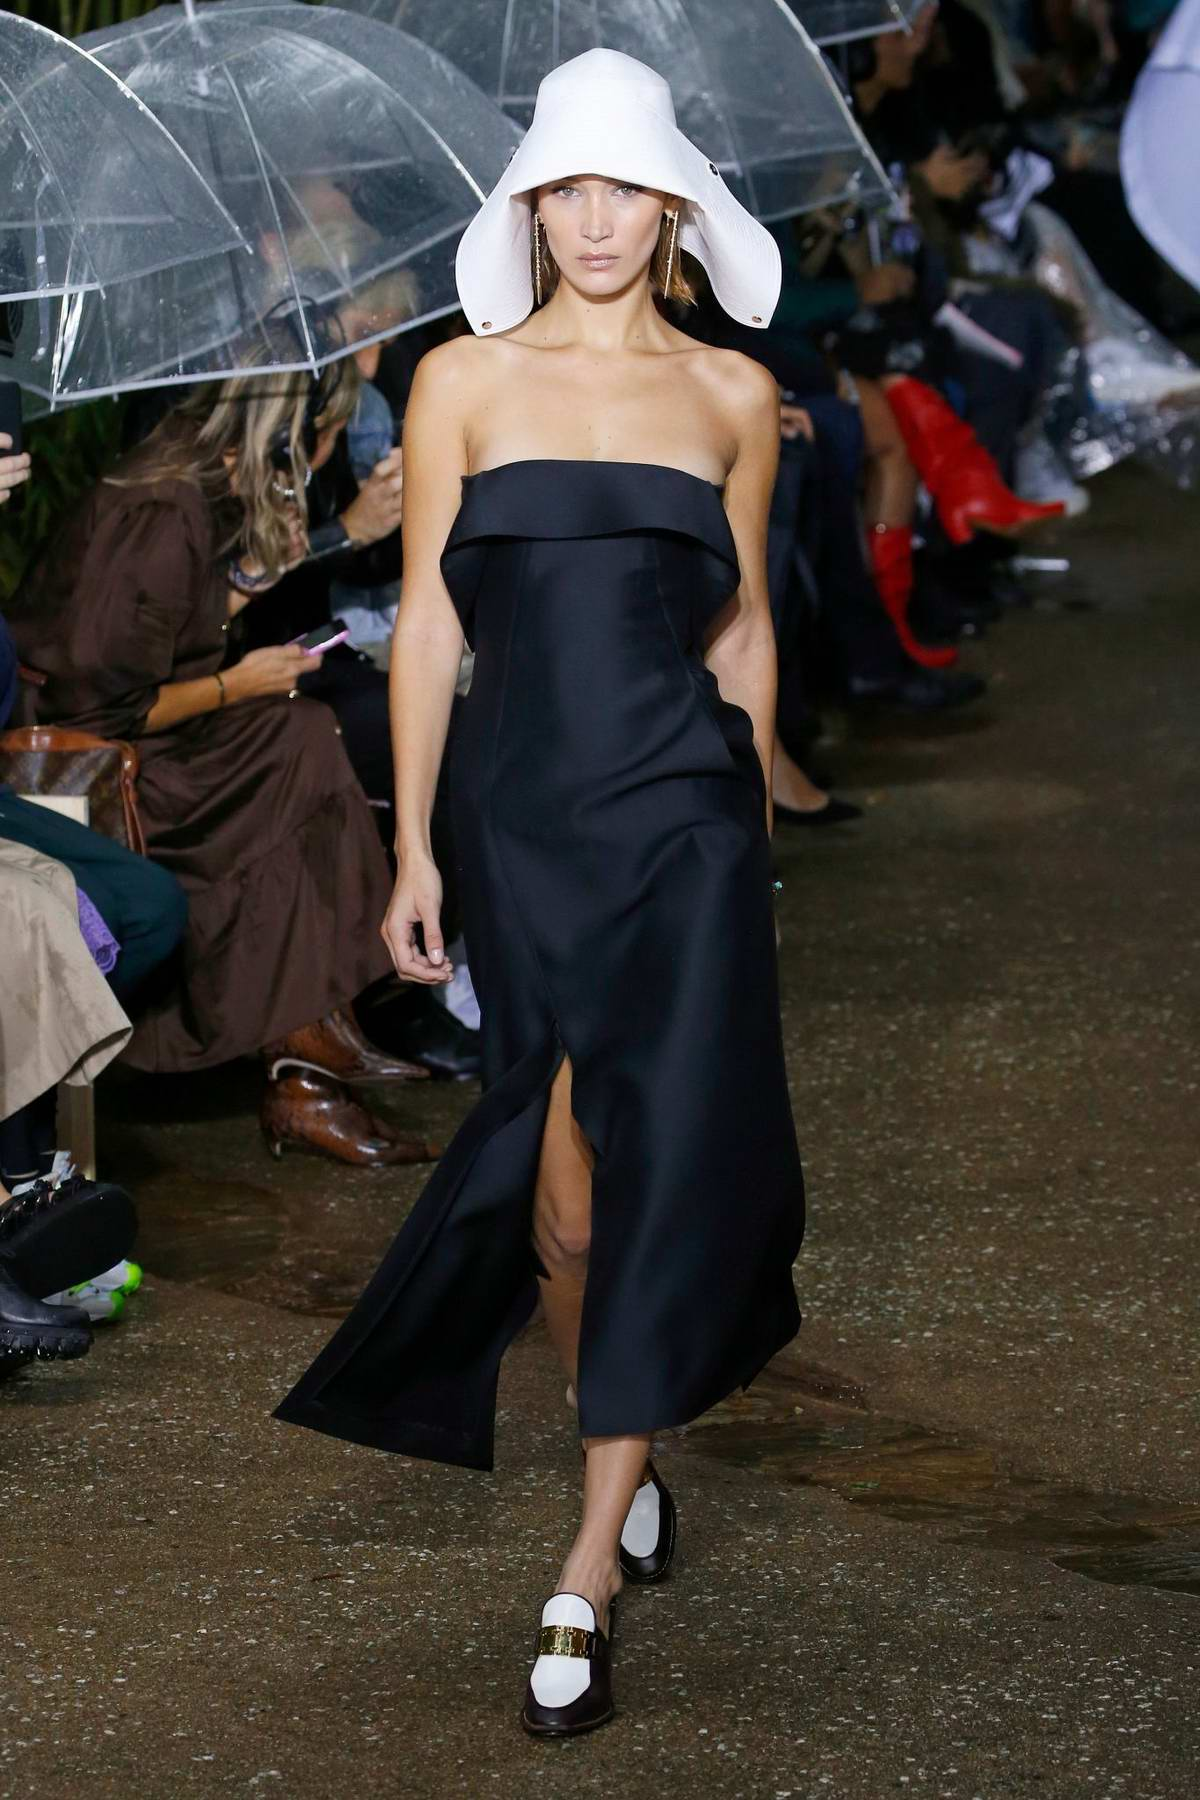 Bella Hadid walks the runway for the Lanvin Ready to Wear, SS 2020 Show during Paris Fashion Week in Paris, France